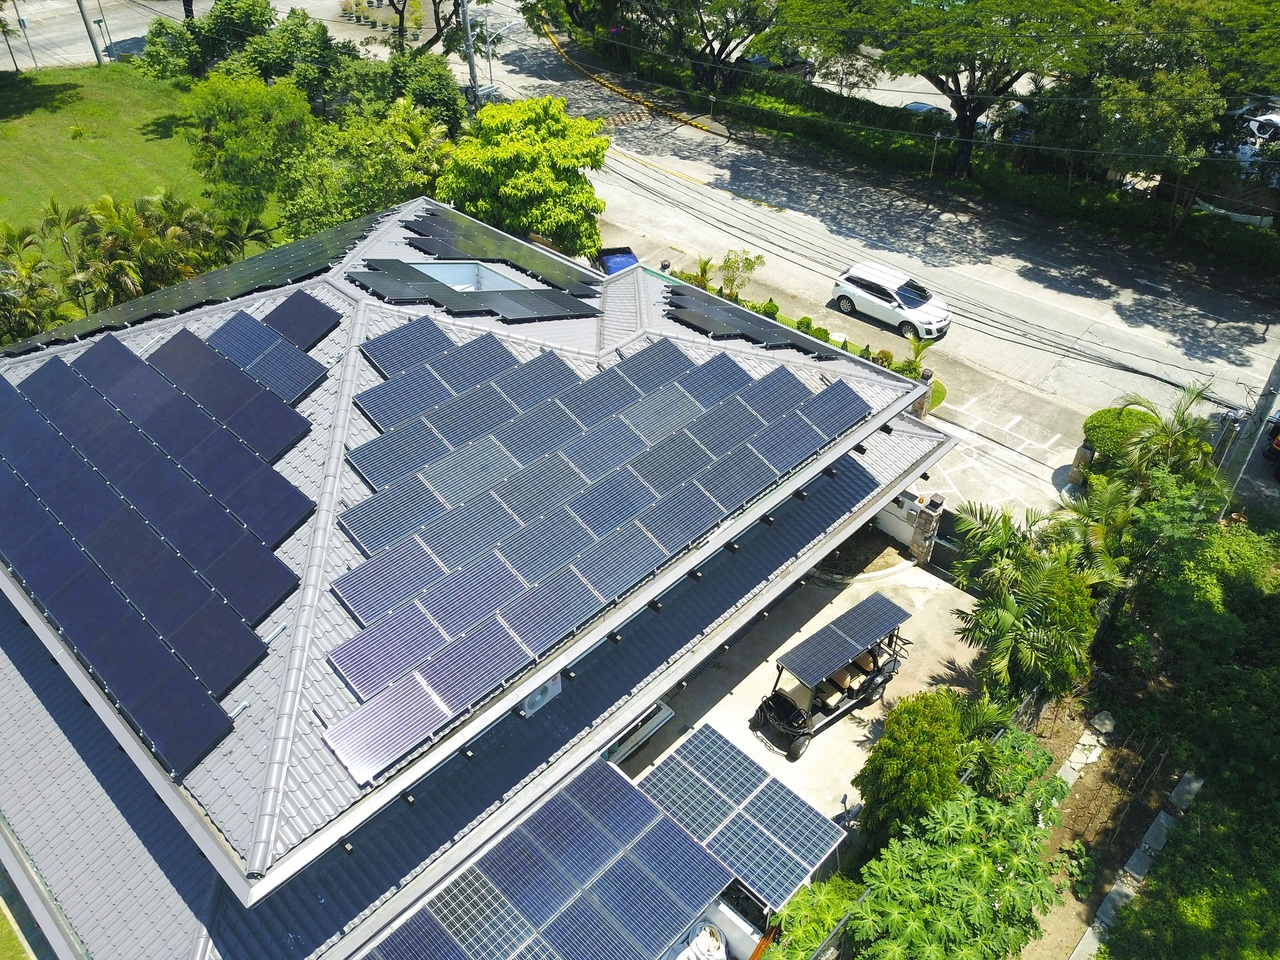 Top shot of a home with solar panels on its rooftop